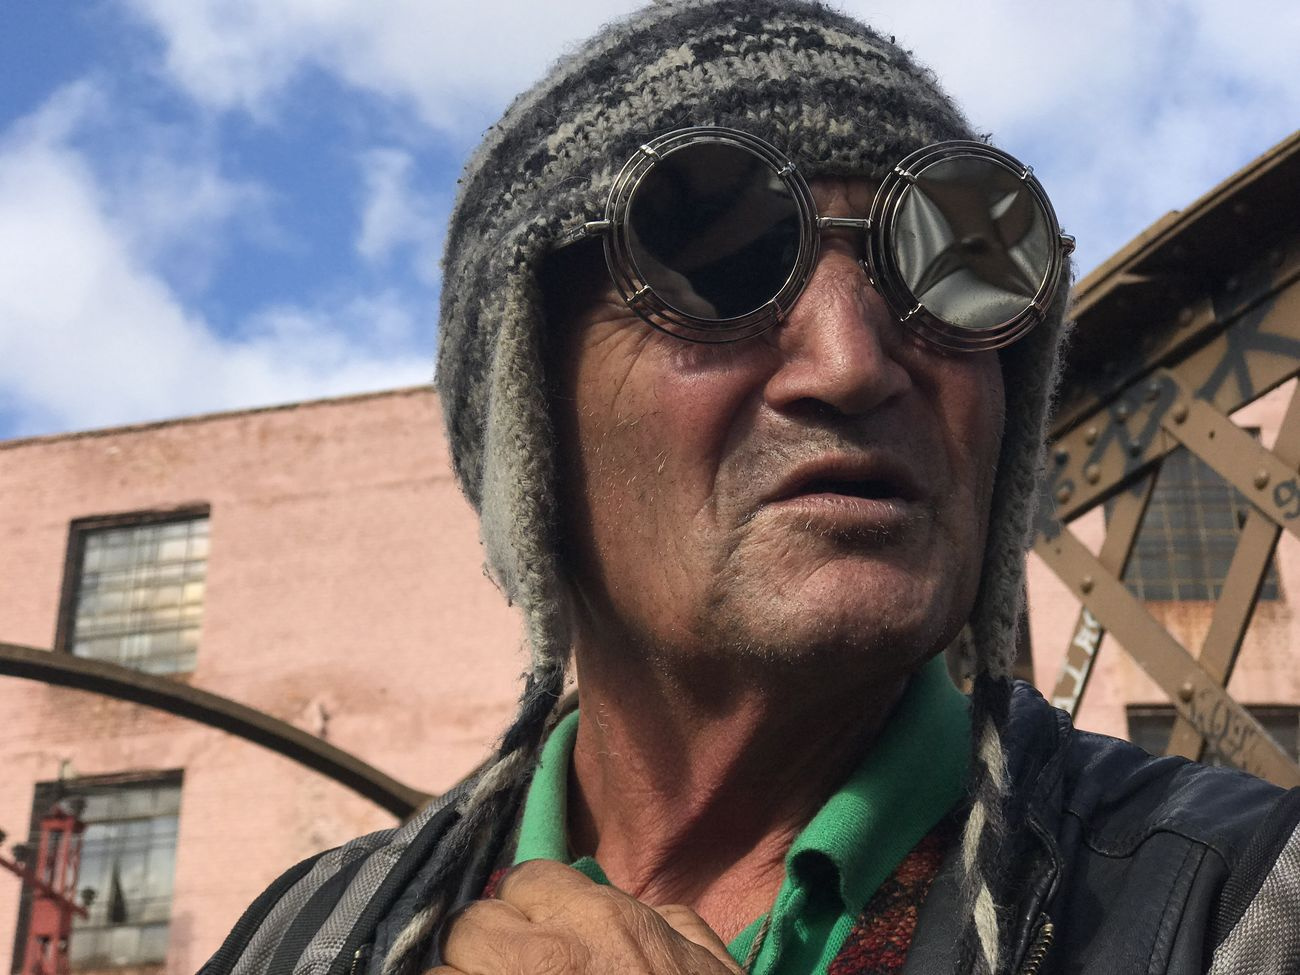 """""""Googleman"""". April, 2017. Shootermag Streetphotography Portrait Real People One Person Headshot Mid Adult Men Mature Men Outdoors Looking At Camera Day Front View Mid Adult Low Angle View Mature Adult Lifestyles Building Exterior Sky Cloud - Sky Built Structure Architecture Smiling"""